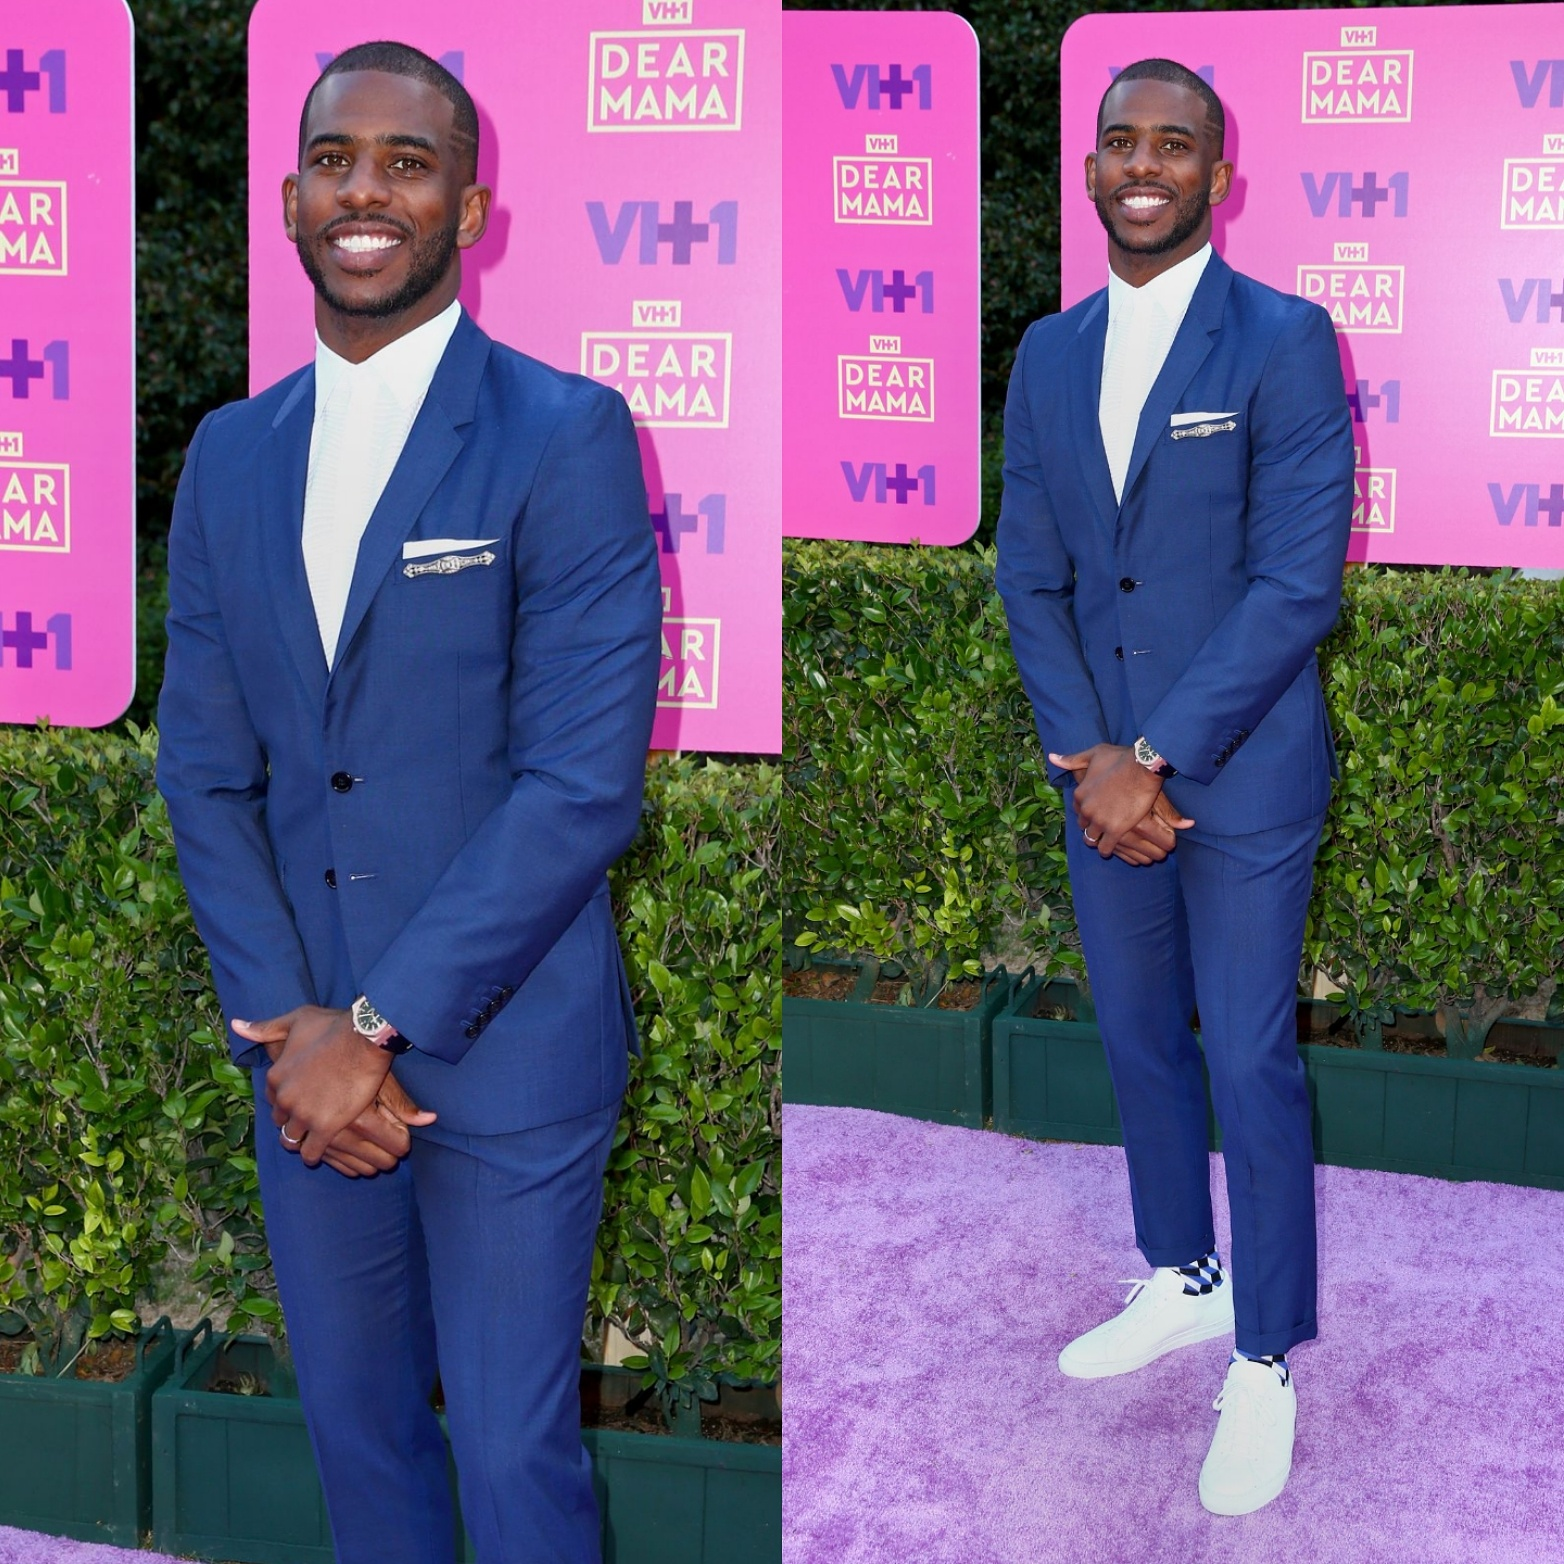 Chris Paul's VH1 Dear Mama Paul Smith Suit